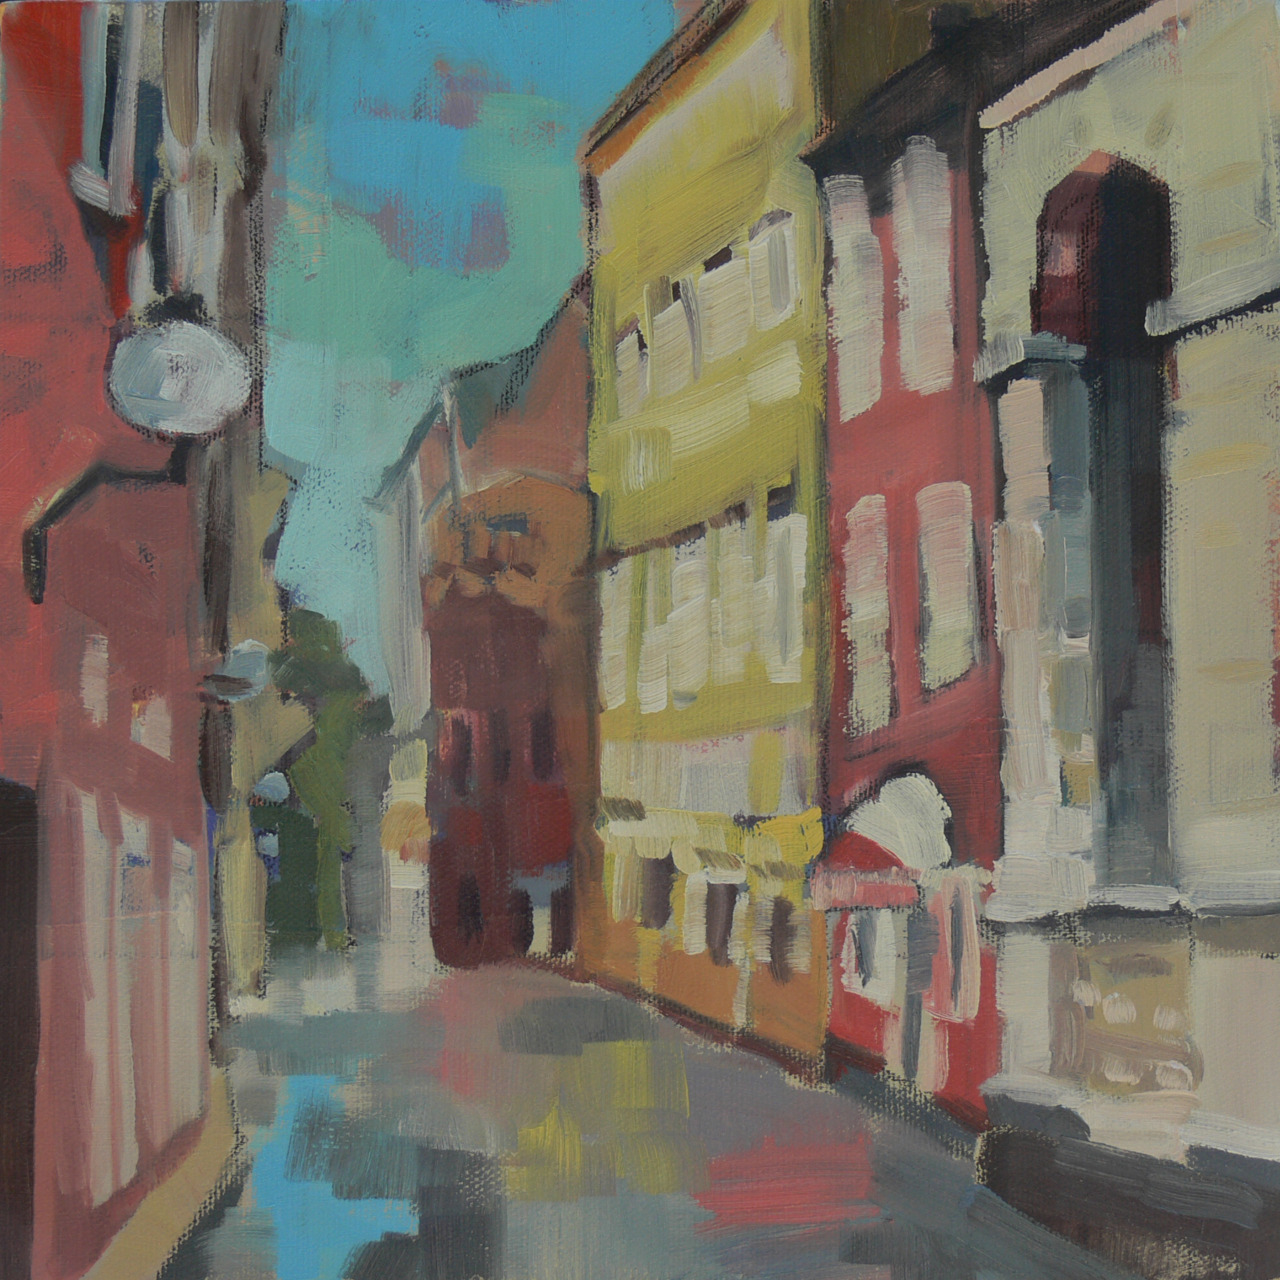 "Croatia Street   10"" x 10"", oil on canvas   Working on someone else's memories of Europe made me want to go back to my own.  This is a street in Zadar Croatia.  We were there several years ago when my sister and her family were living there.  I've just finished a larger painting from this same image."